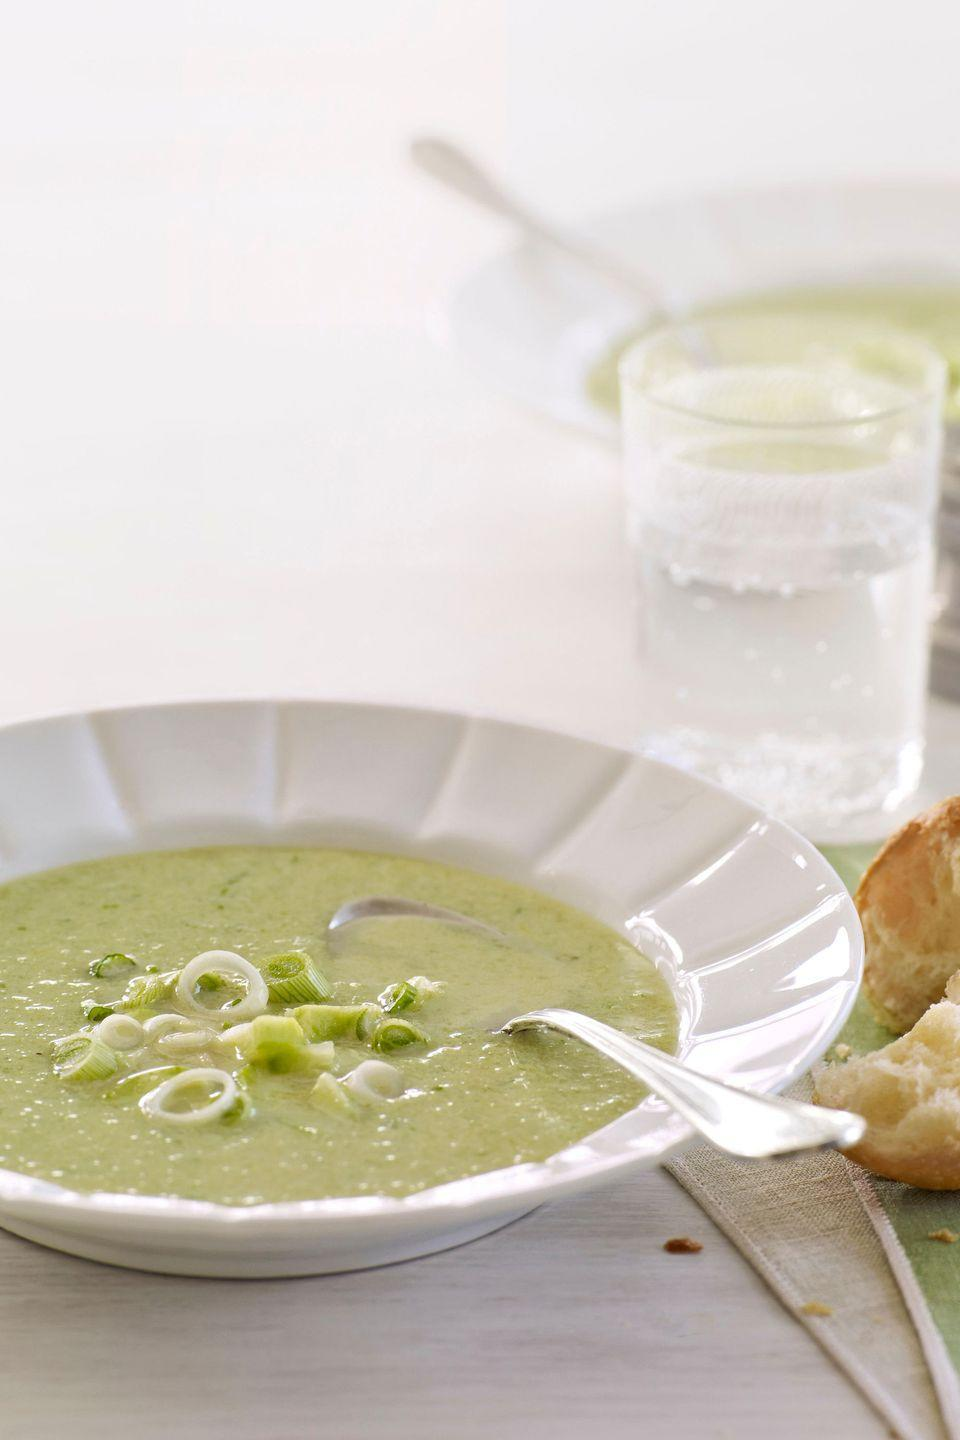 """<p>This fresh cooled soup recipe is perfect for a warm day. </p><p><strong><a href=""""https://www.countryliving.com/food-drinks/recipes/a2785/cold-cucumber-soup-recipe/"""" rel=""""nofollow noopener"""" target=""""_blank"""" data-ylk=""""slk:Get the recipe"""" class=""""link rapid-noclick-resp"""">Get the recipe</a>.</strong></p>"""